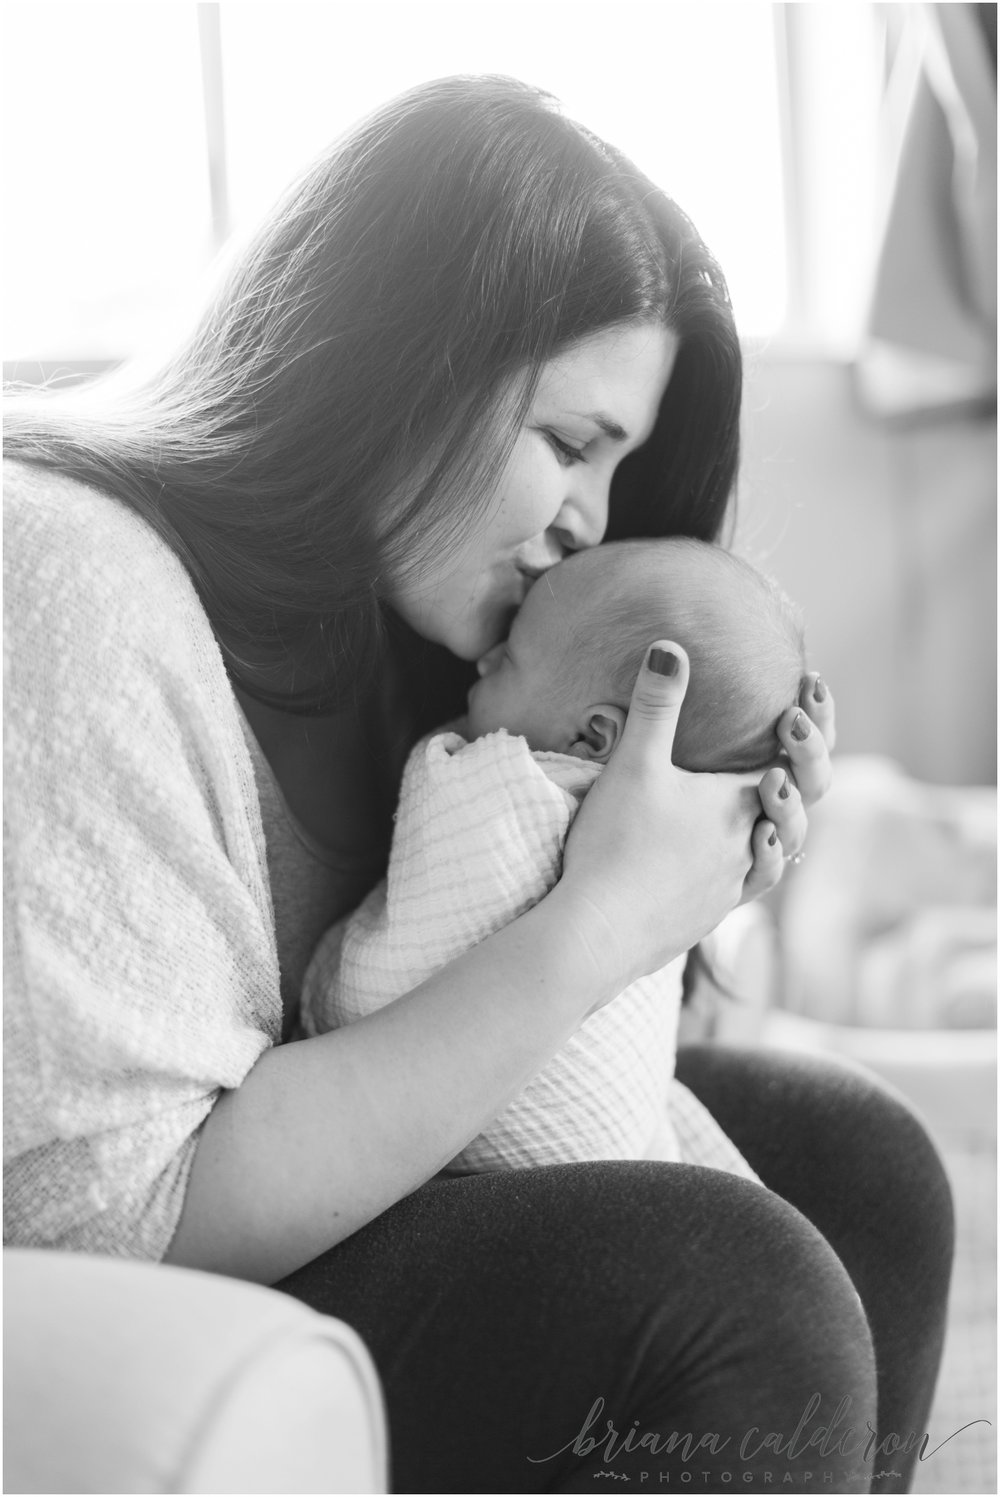 Lifestyle newborn photos by Briana Calderon Photography_0982.jpg